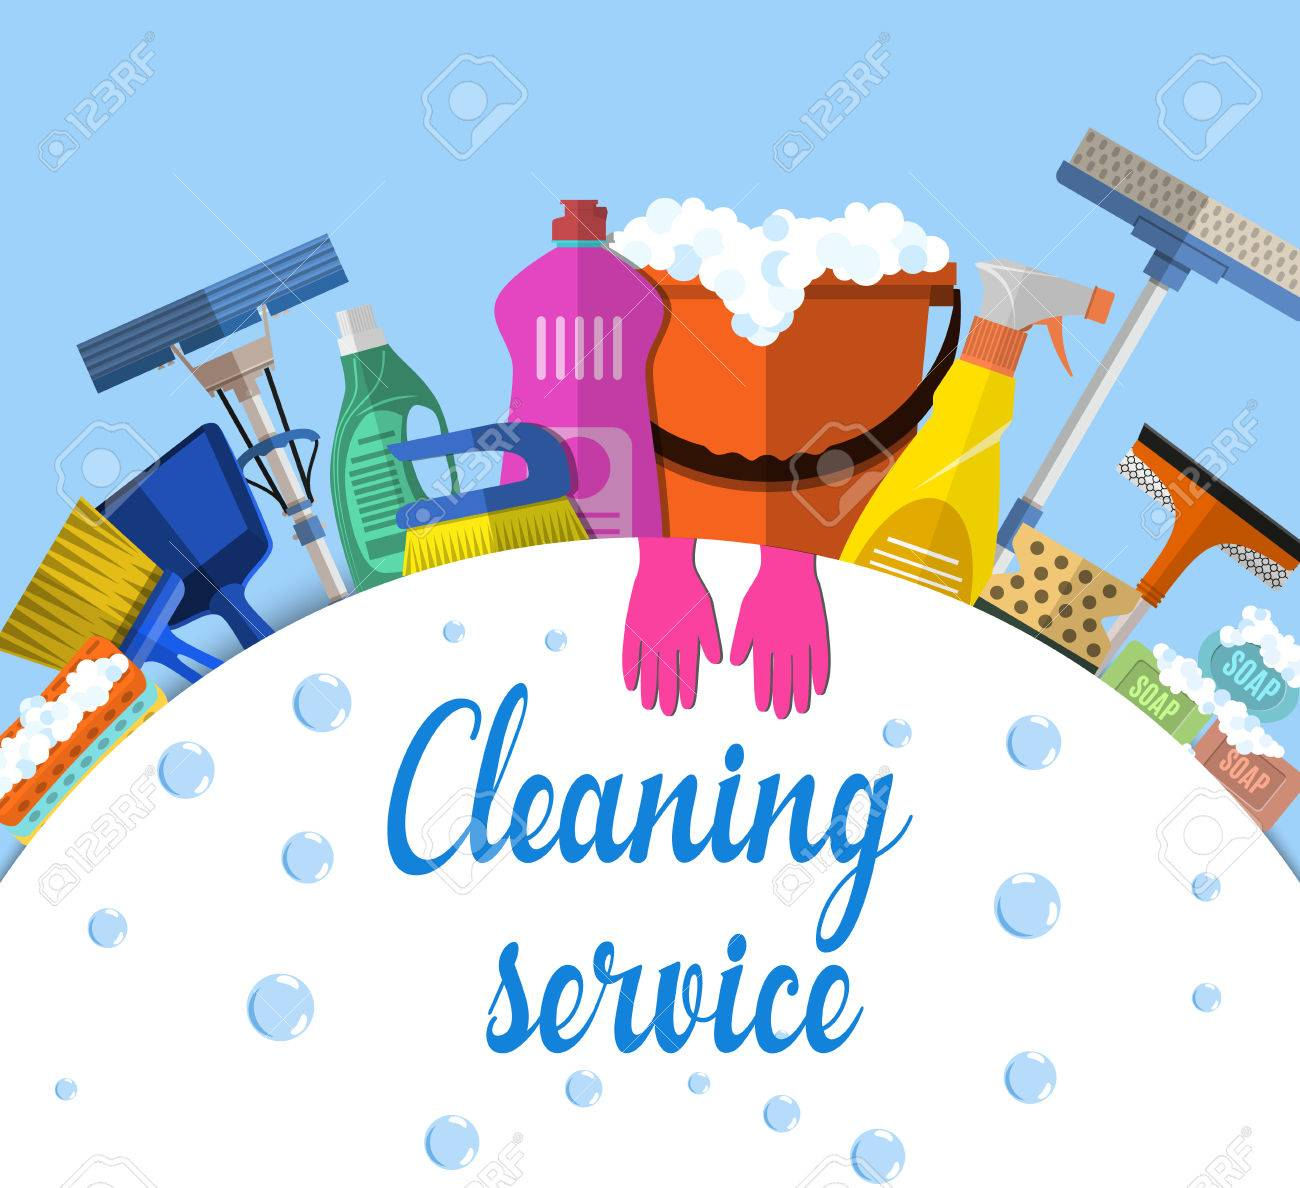 Attractive Cleaning Service Flat Illustration. Poster Template For House Cleaning  Services With Various Cleaning Tools.